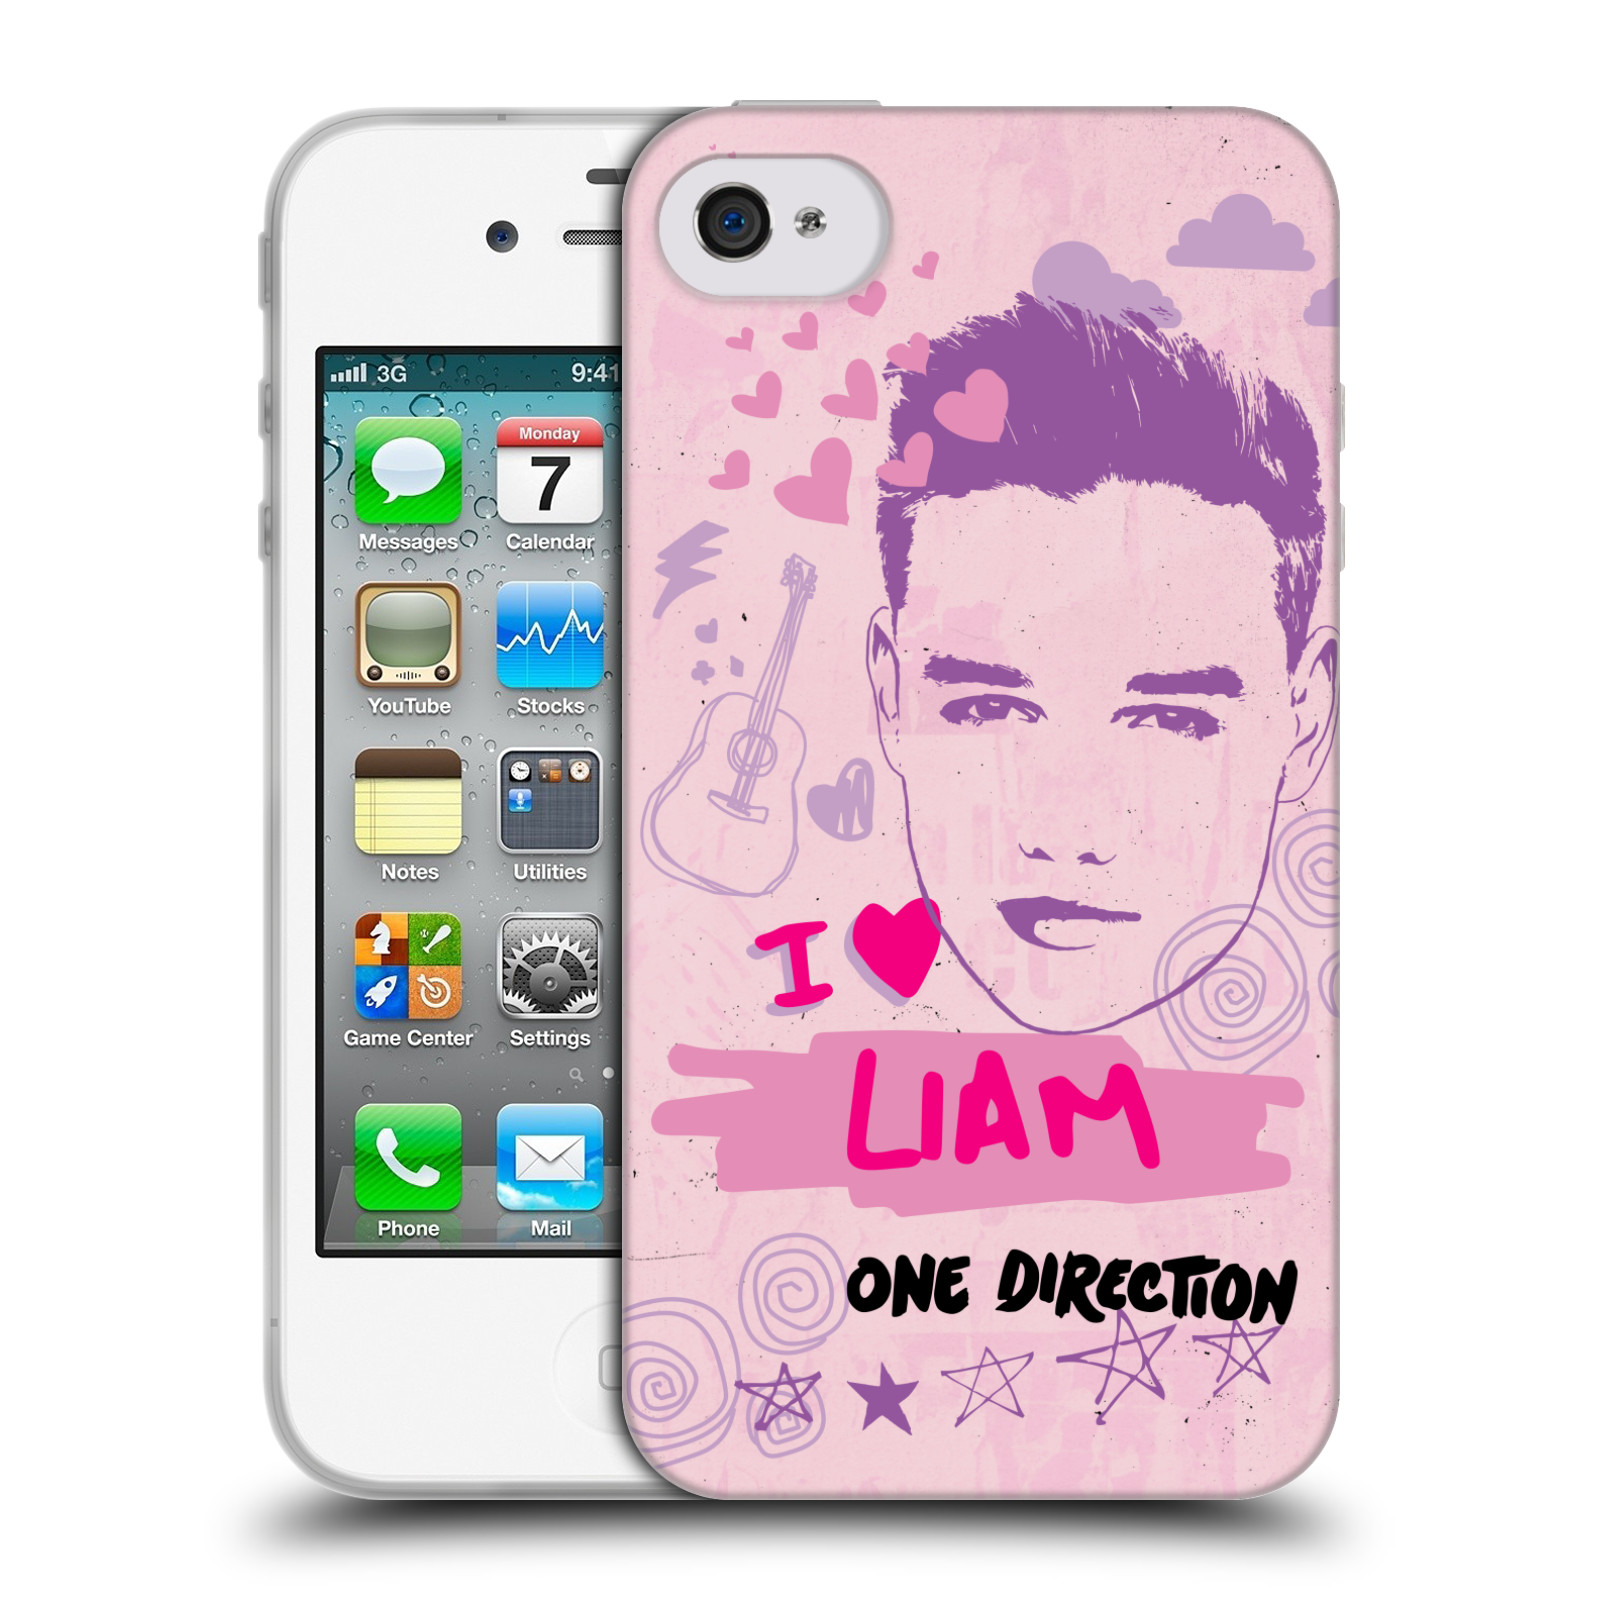 OFFICIAL-ONE-DIRECTION-1D-PINK-GRAPHIC-FACES-SOFT-GEL-CASE-FOR-APPLE-iPHONE-4S